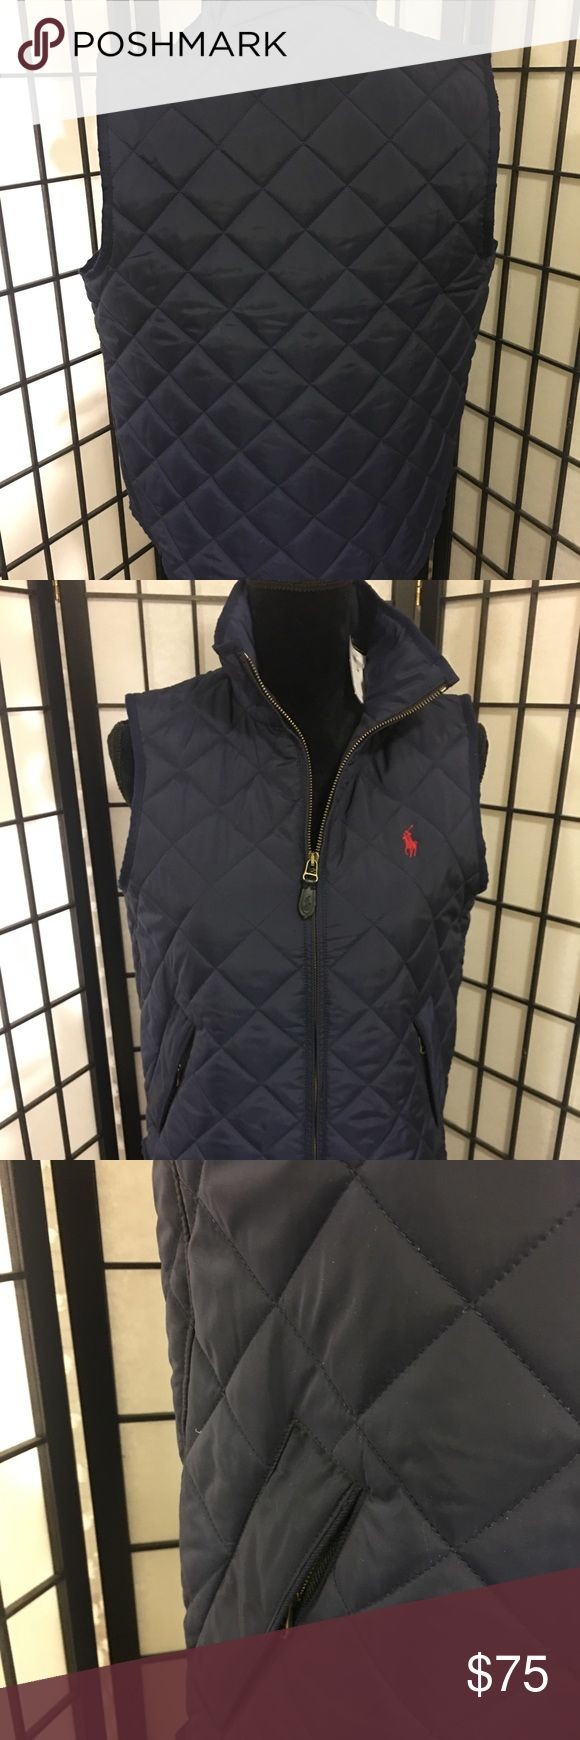 """NWT Polo Ralph Lauren women's Navy Quilted Vest MEDIUM  Polo Ralph Lauren Zip up quilted vest with pony logo.  Brand new never worn. Original tags  •Width 19 1/2 •Length 25"""" •Two side zip pockets •Polo leather logo on front zipper Have questions?? Please ask! Polo by Ralph Lauren Jackets & Coats Vests"""